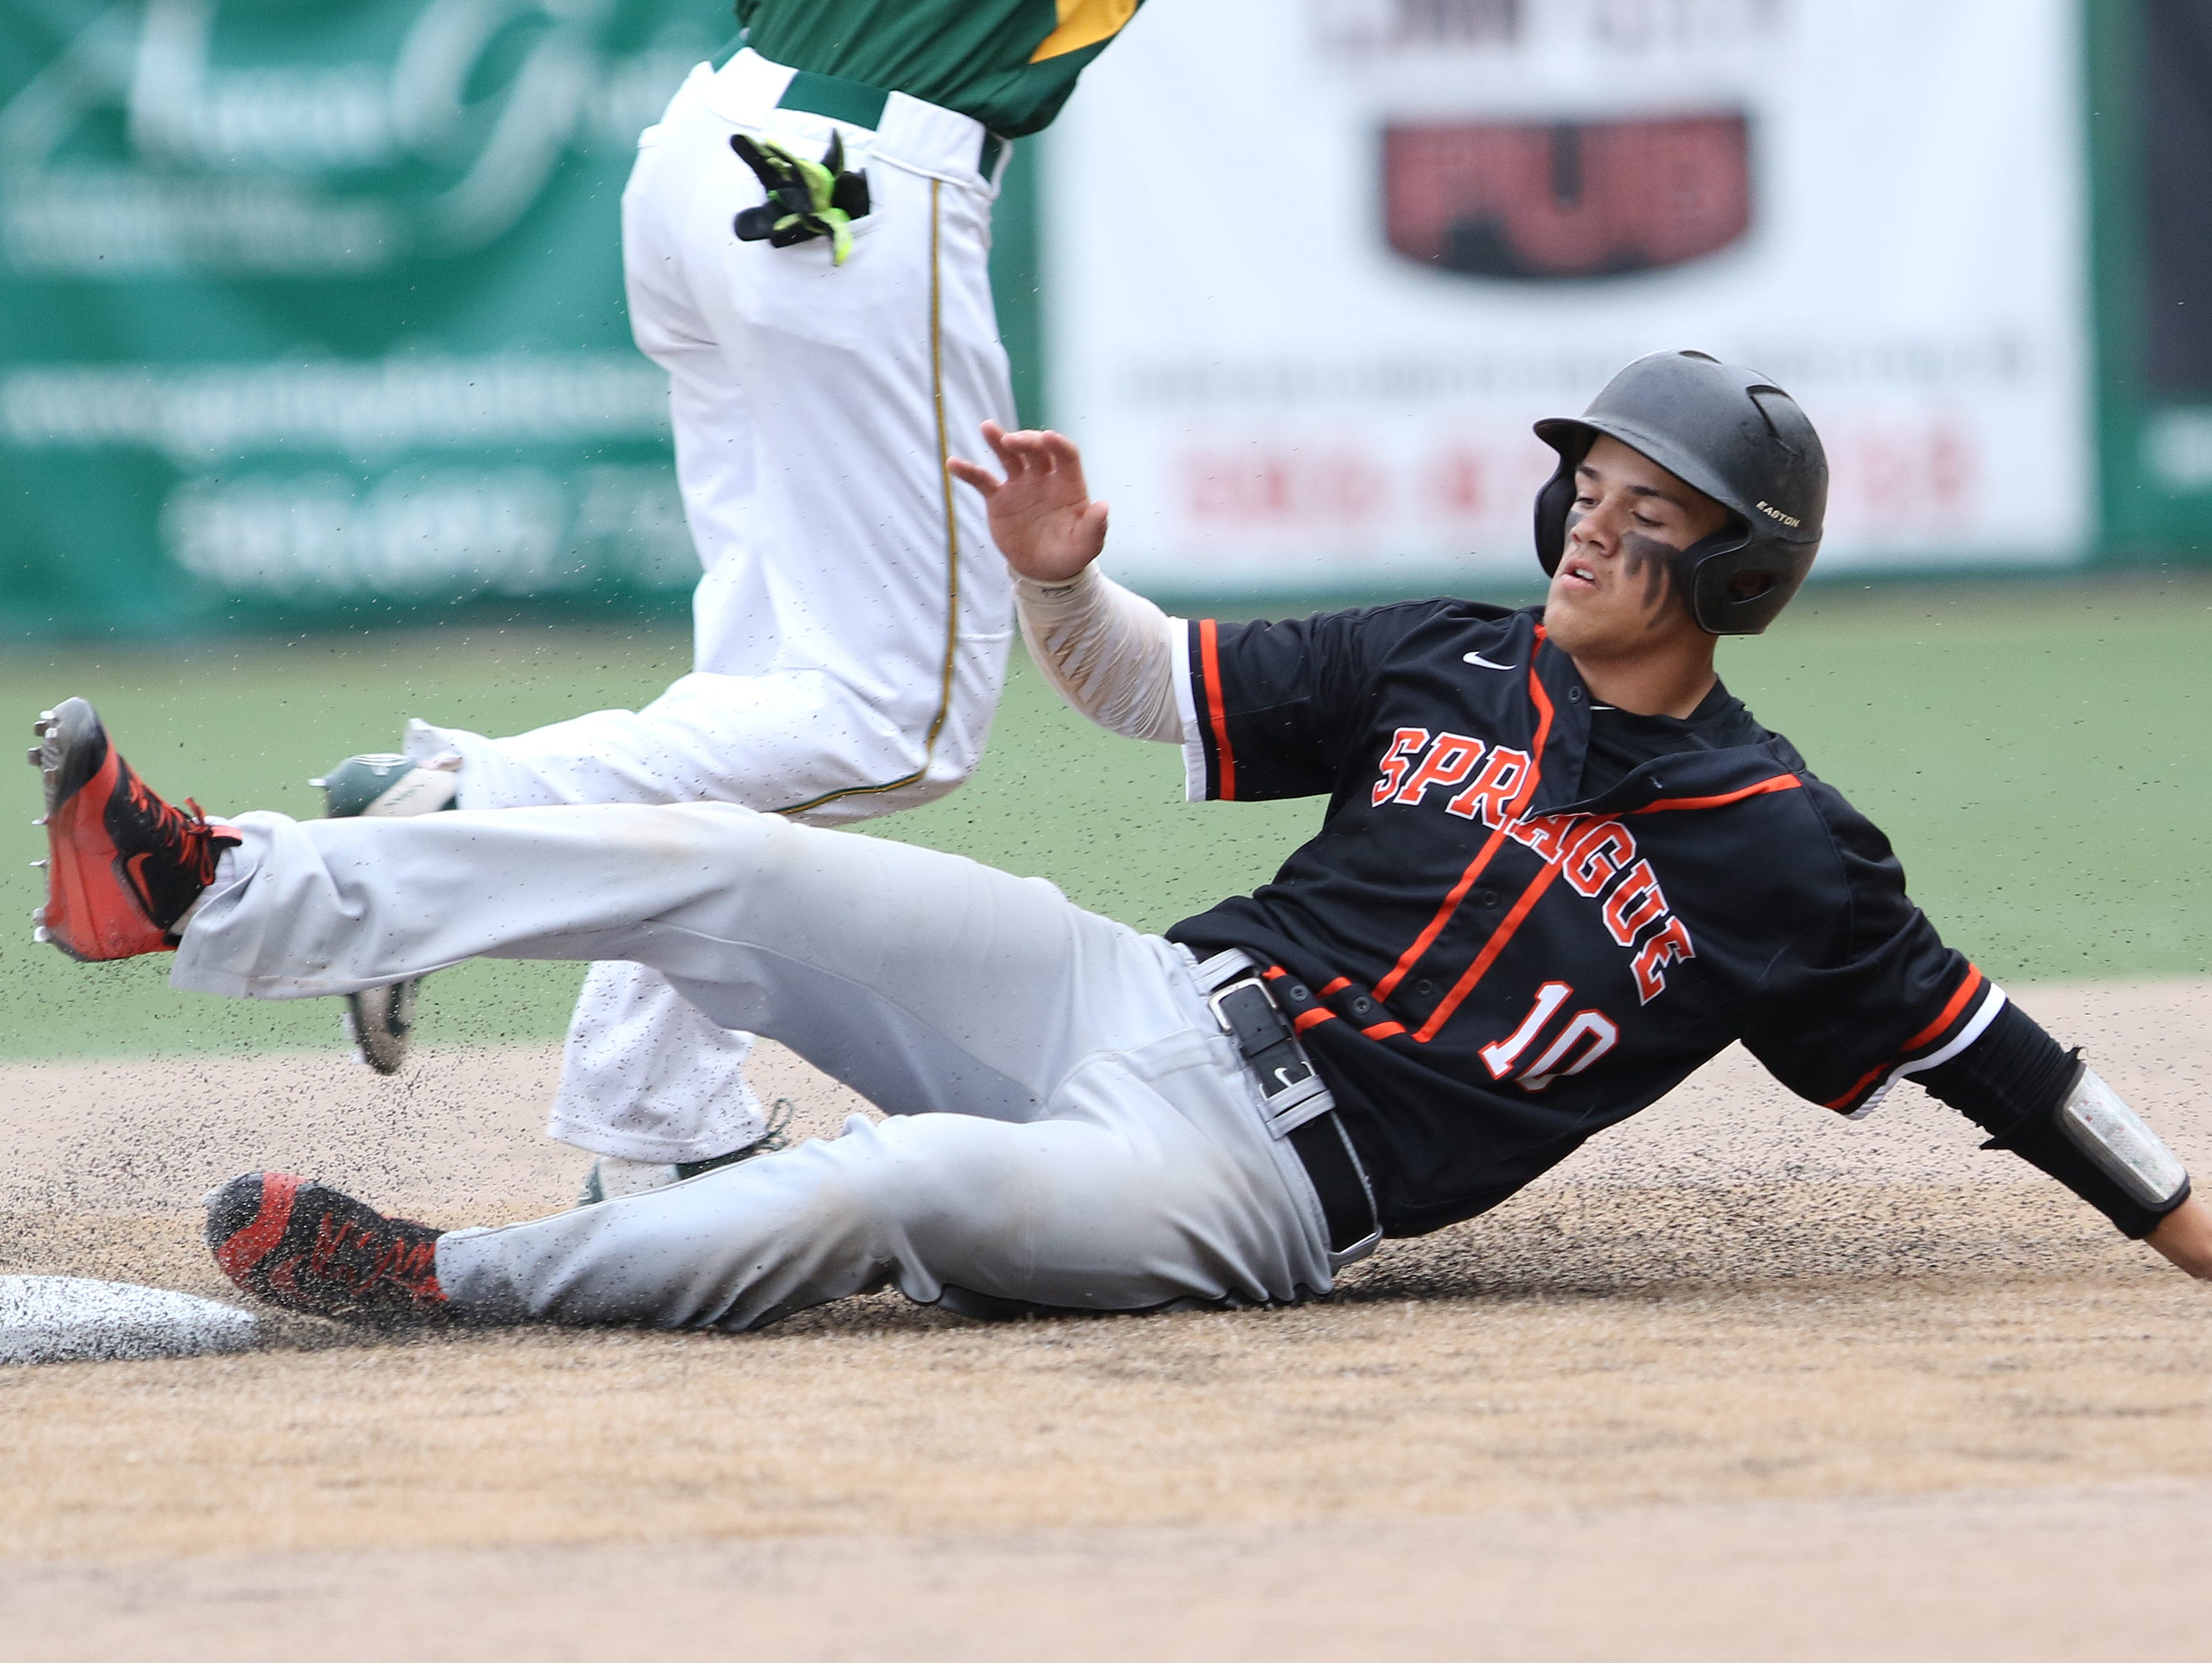 Sprague's Justin Culpepper slides to second base as the Olympians fall to West Linn 5-3 in second round of OSAA 6A state playoffs on Wednesday, May 25, 2016, at West Linn High School.